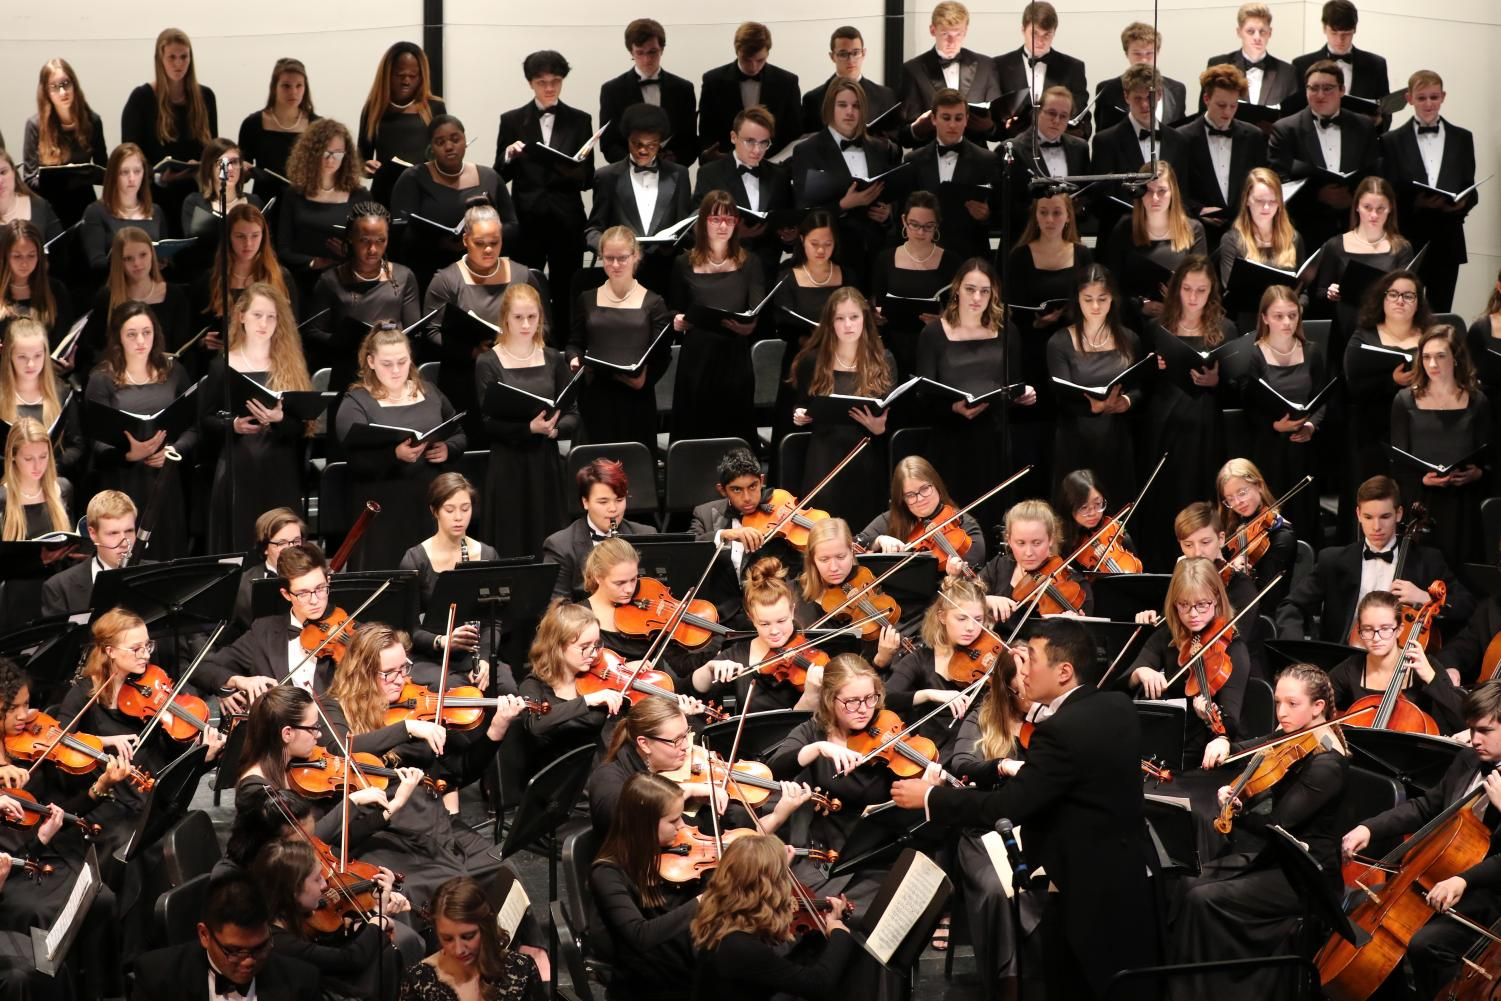 Tyler+Hagy+conducts+the+concert+orchestra+and+advanced+choirs